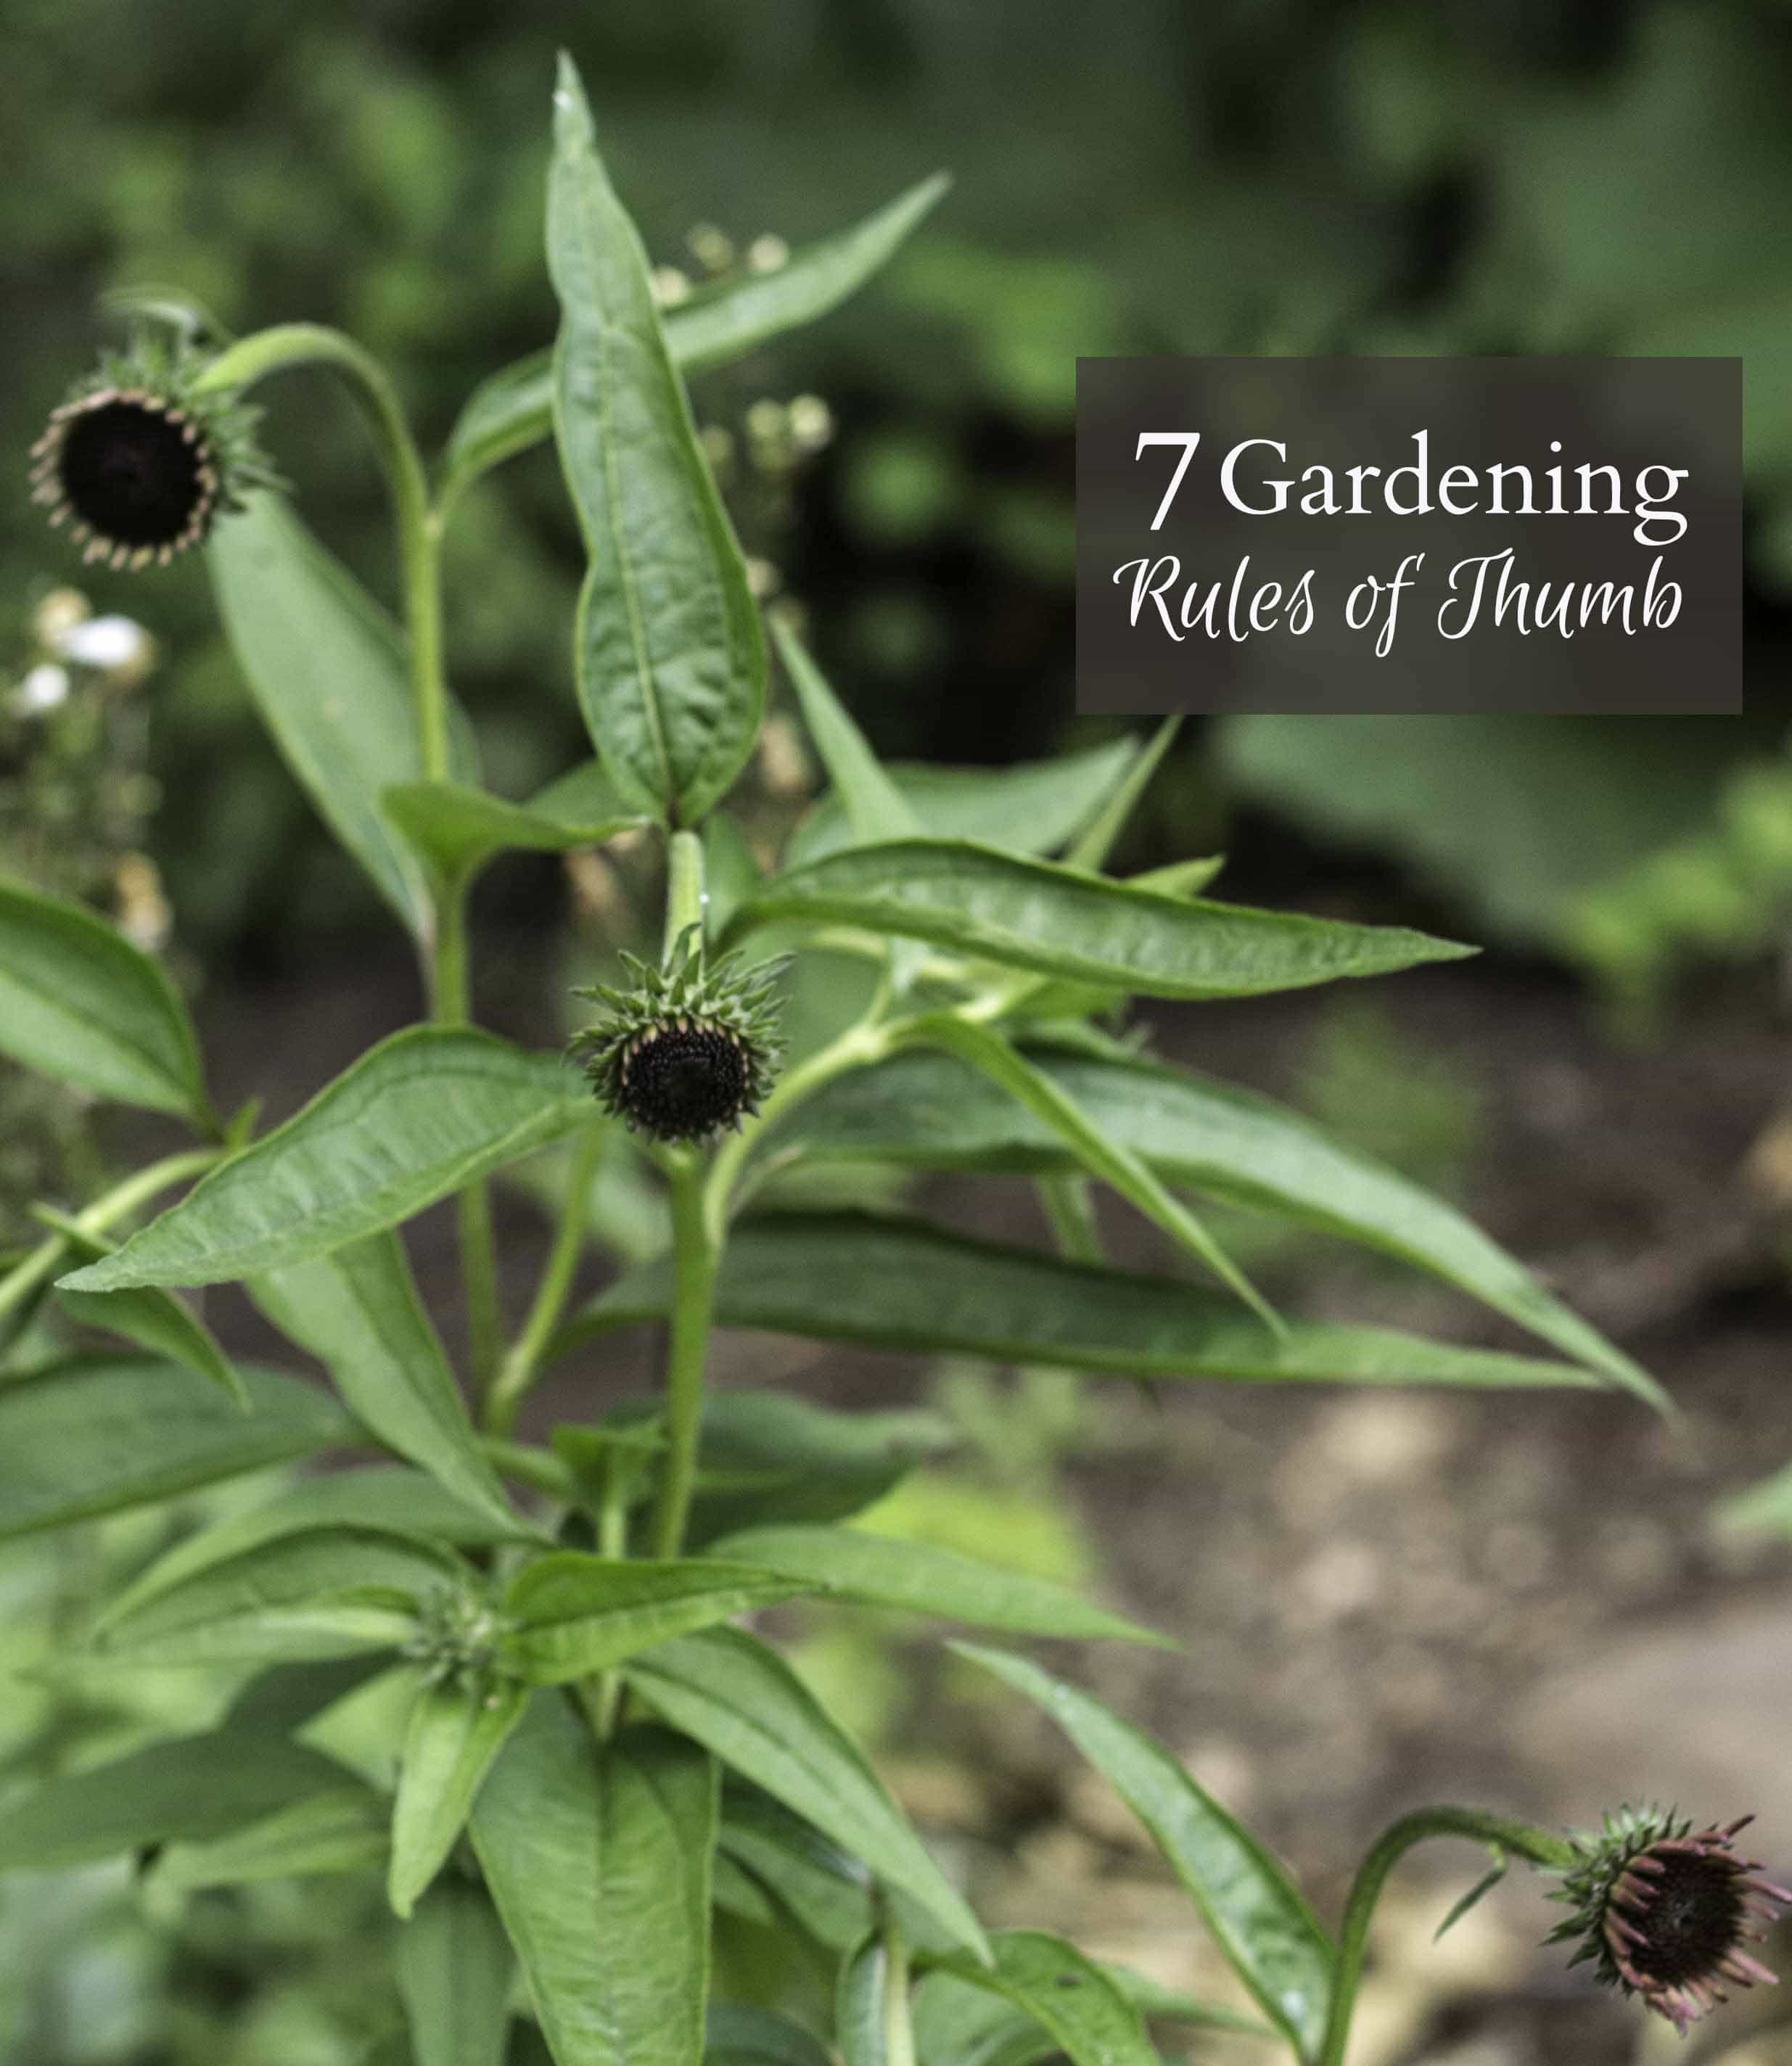 Learn some great tips about gardening rules of thumb, gathered over many years of backyard gardening experience to help you have success in your garden.